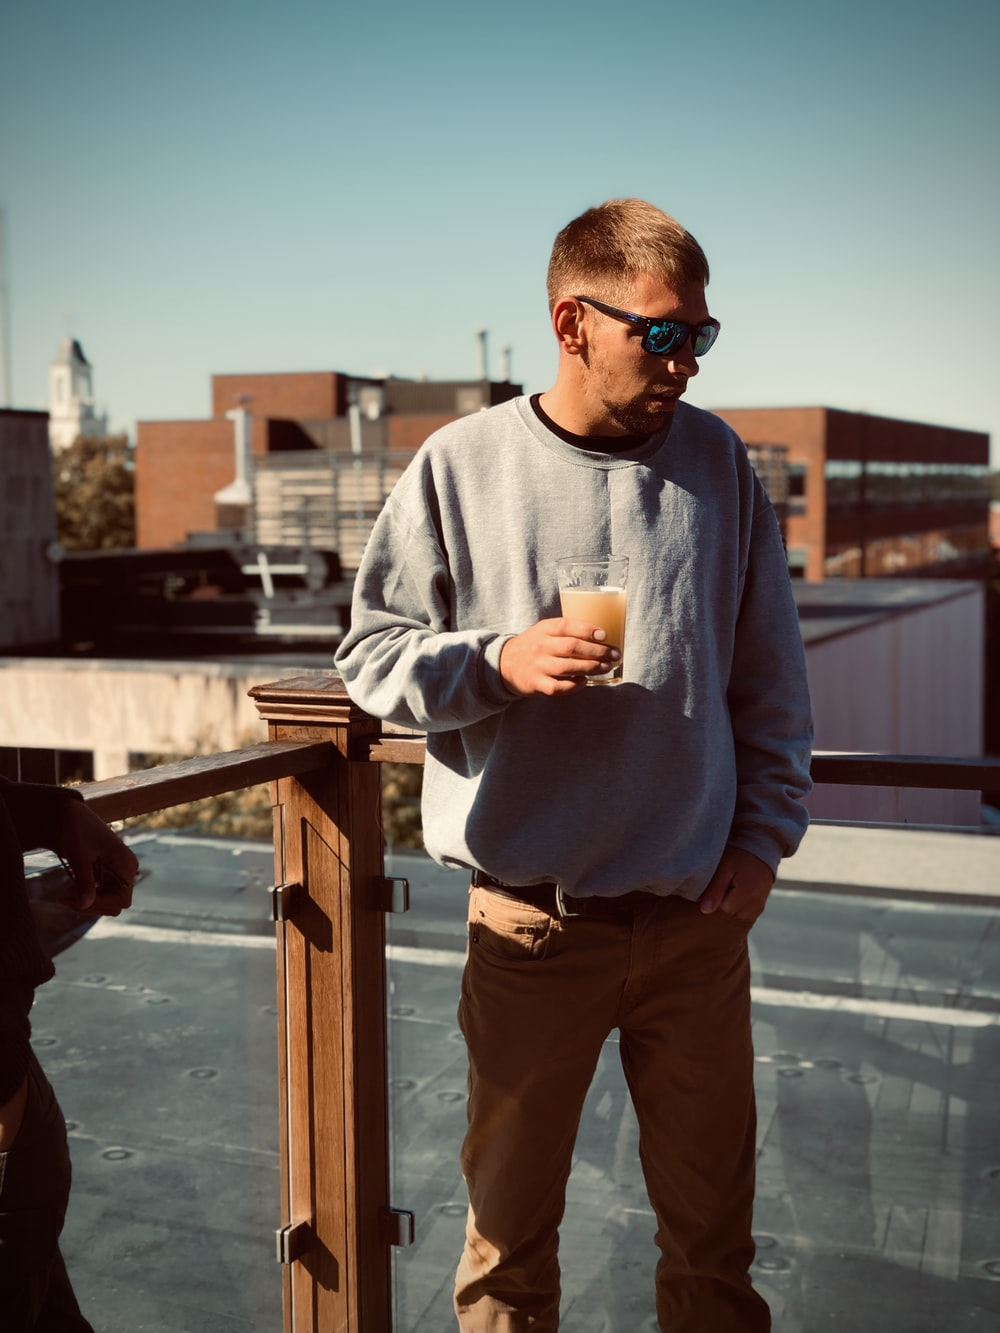 man standing and holding drink